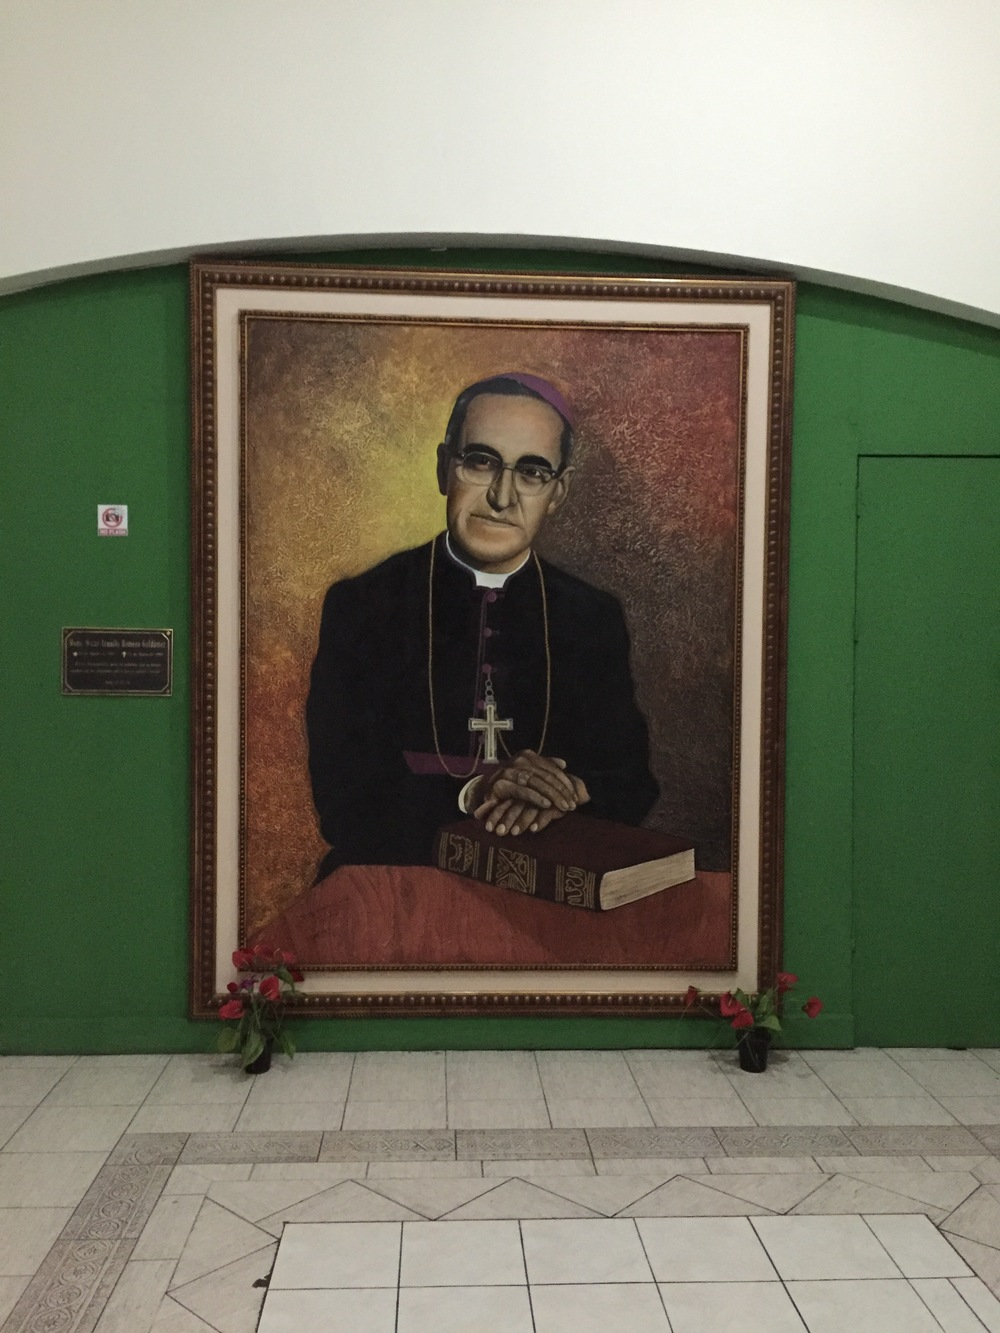 A painting of Archbishop Oscar Romero in San Salvador Cathedral at San Salvador Cathedral. Archbishop Romero outspokenly opposed social injustice, assassinations and torture, which were being practiced by an El Salvadoran military junta that took power in 1979. He urged the US government to stop sending aid to the junta.  He was assassinated in 1980. Shortly afterward, the Salvadoran Civil War ensued.